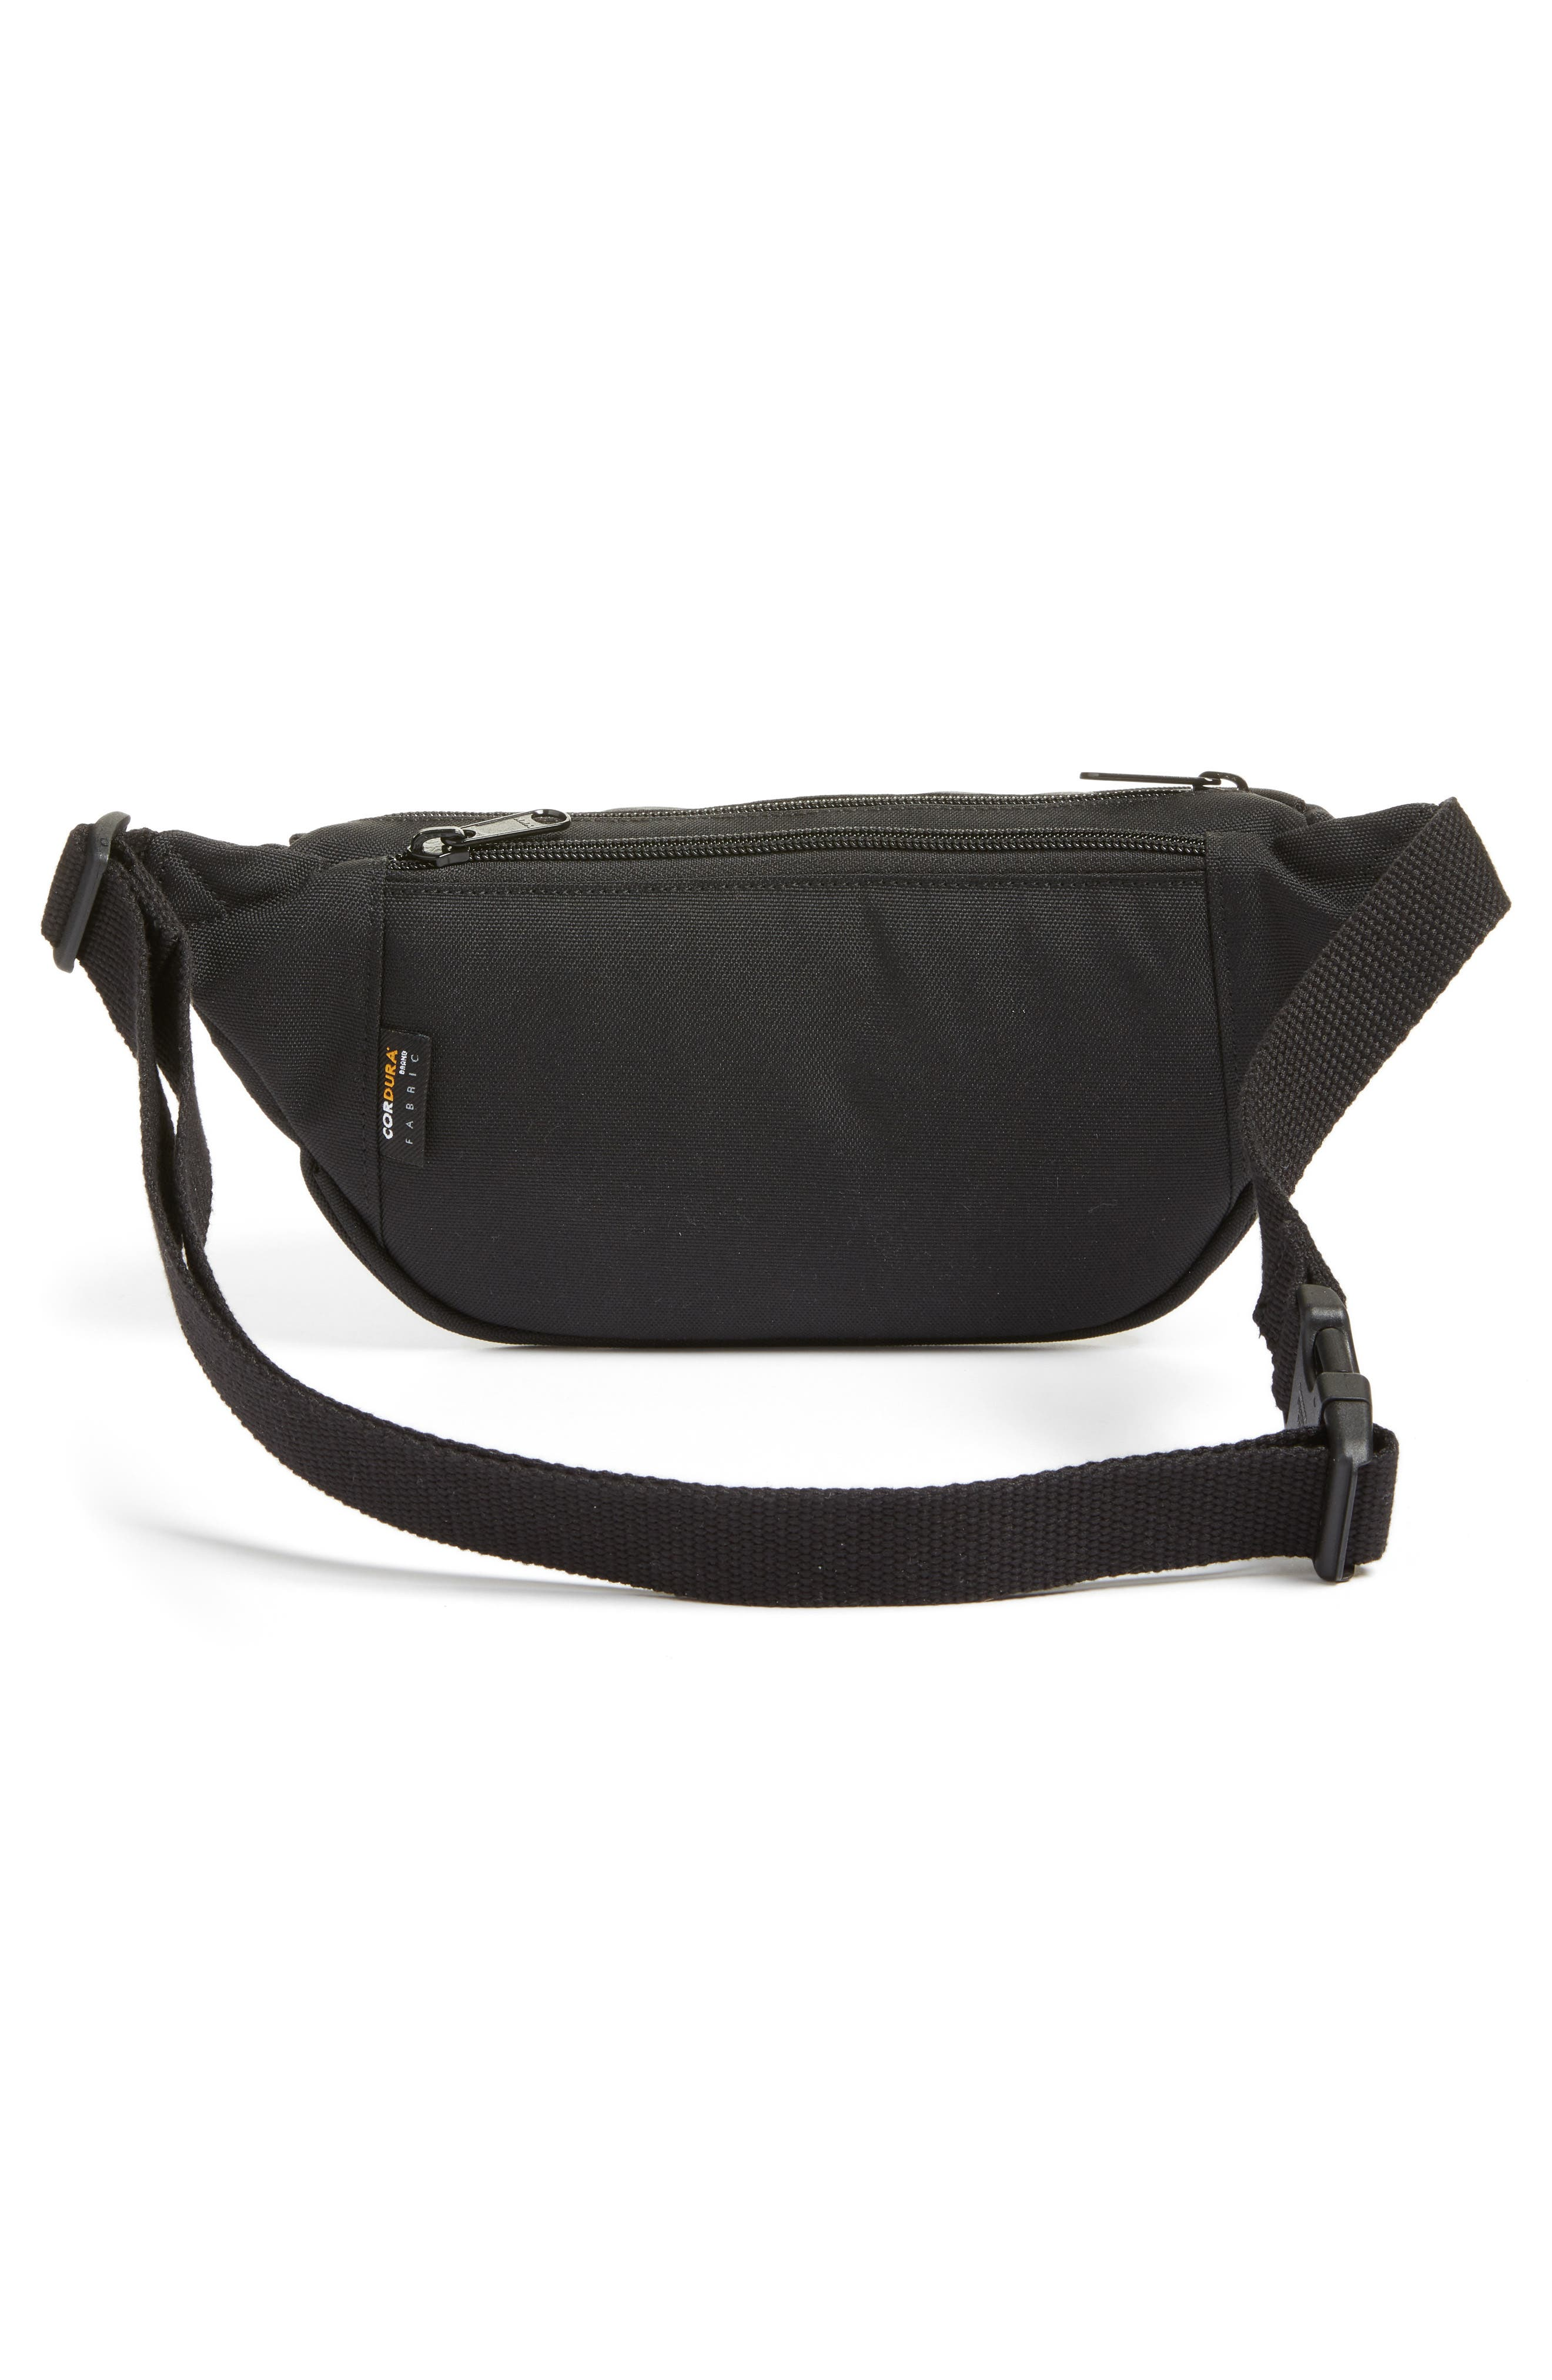 Belt Bag,                             Alternate thumbnail 2, color,                             Black/Black